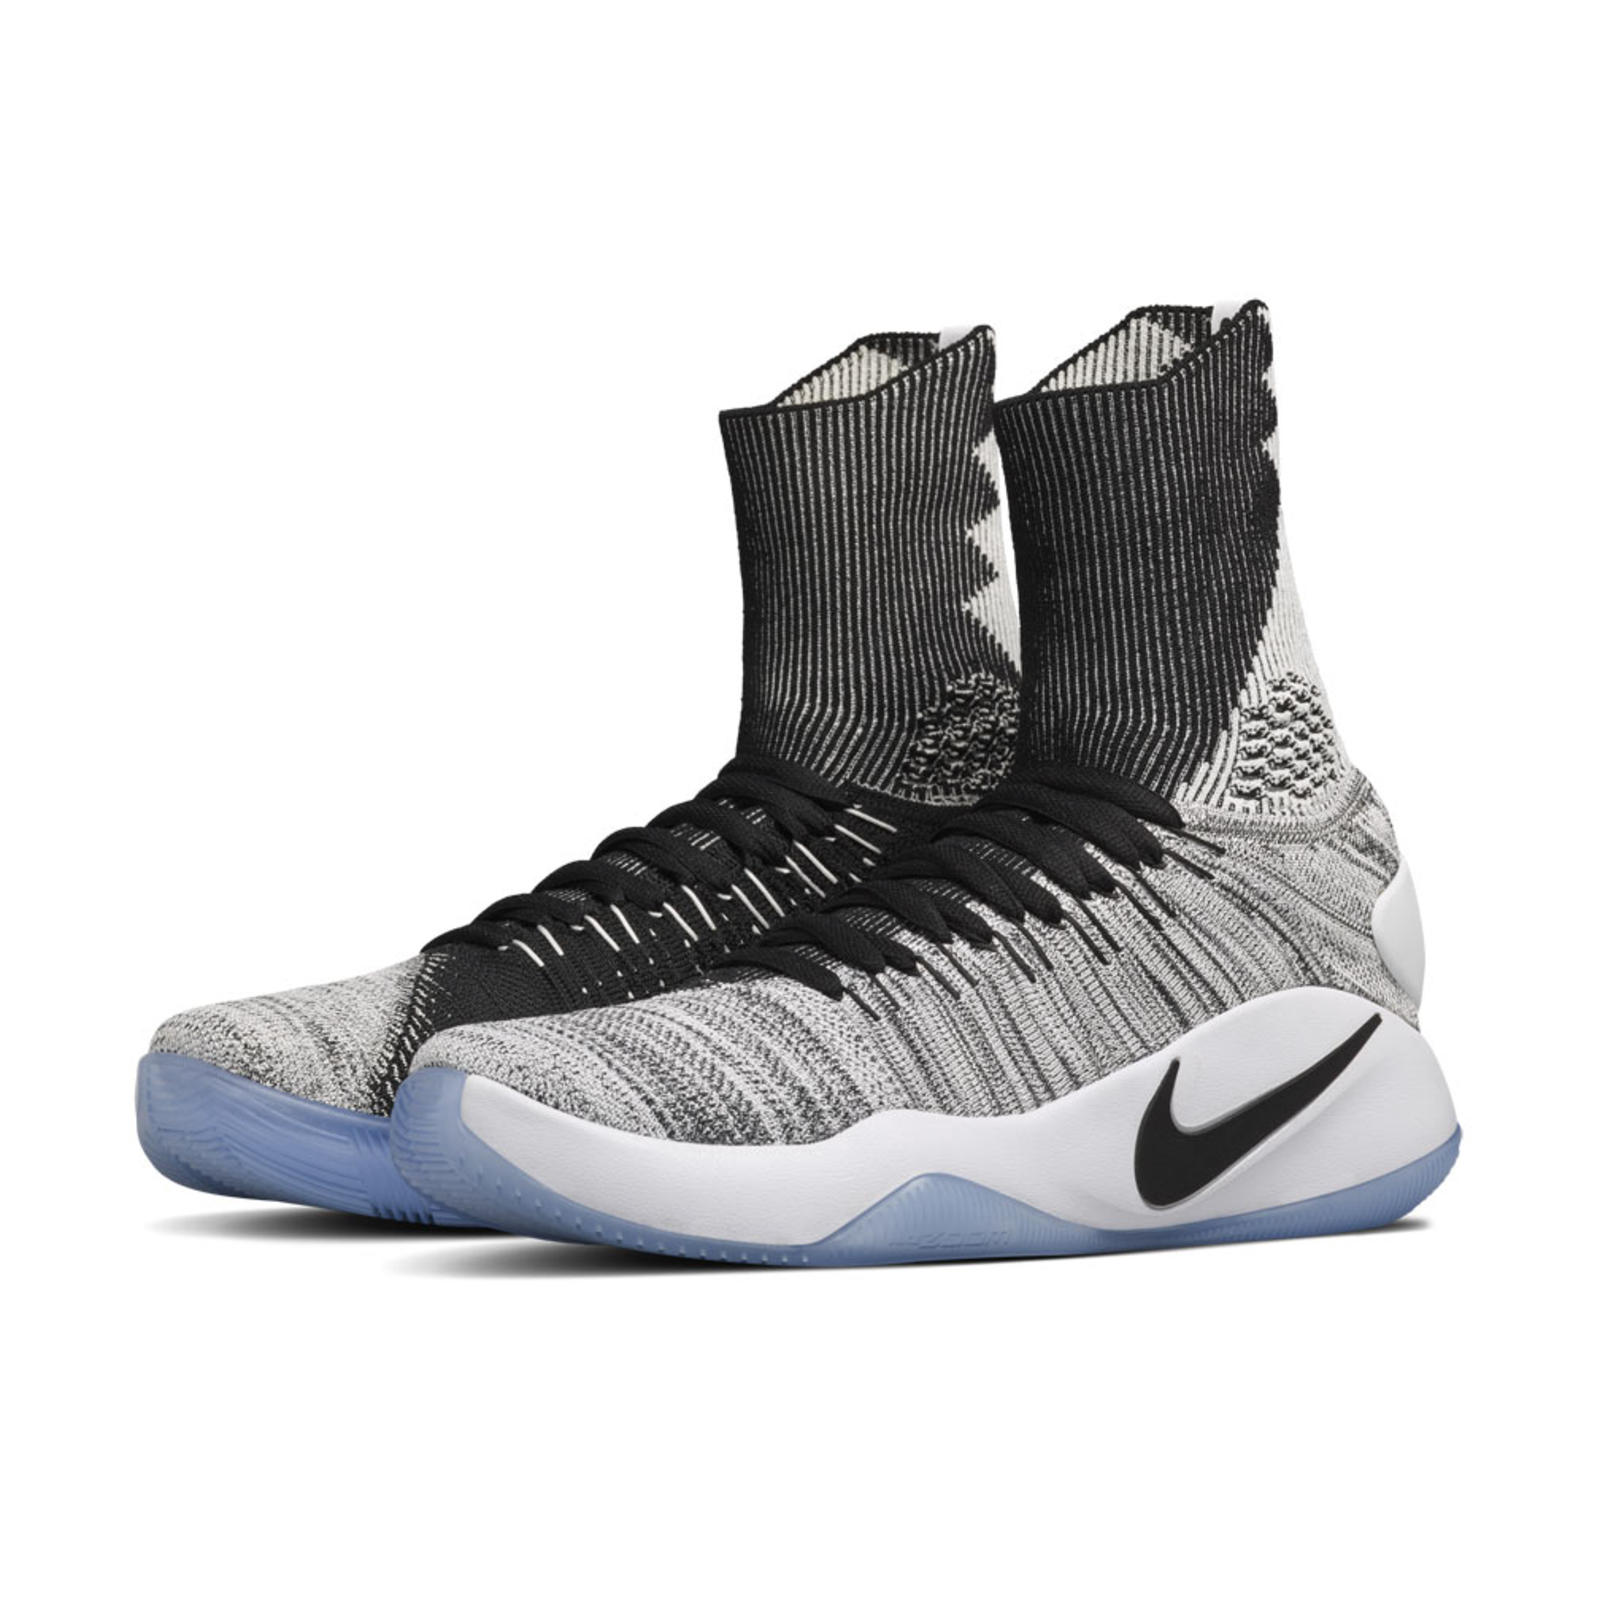 Share Image. Specifically, the latest iteration of the Nike Hyperdunk ...